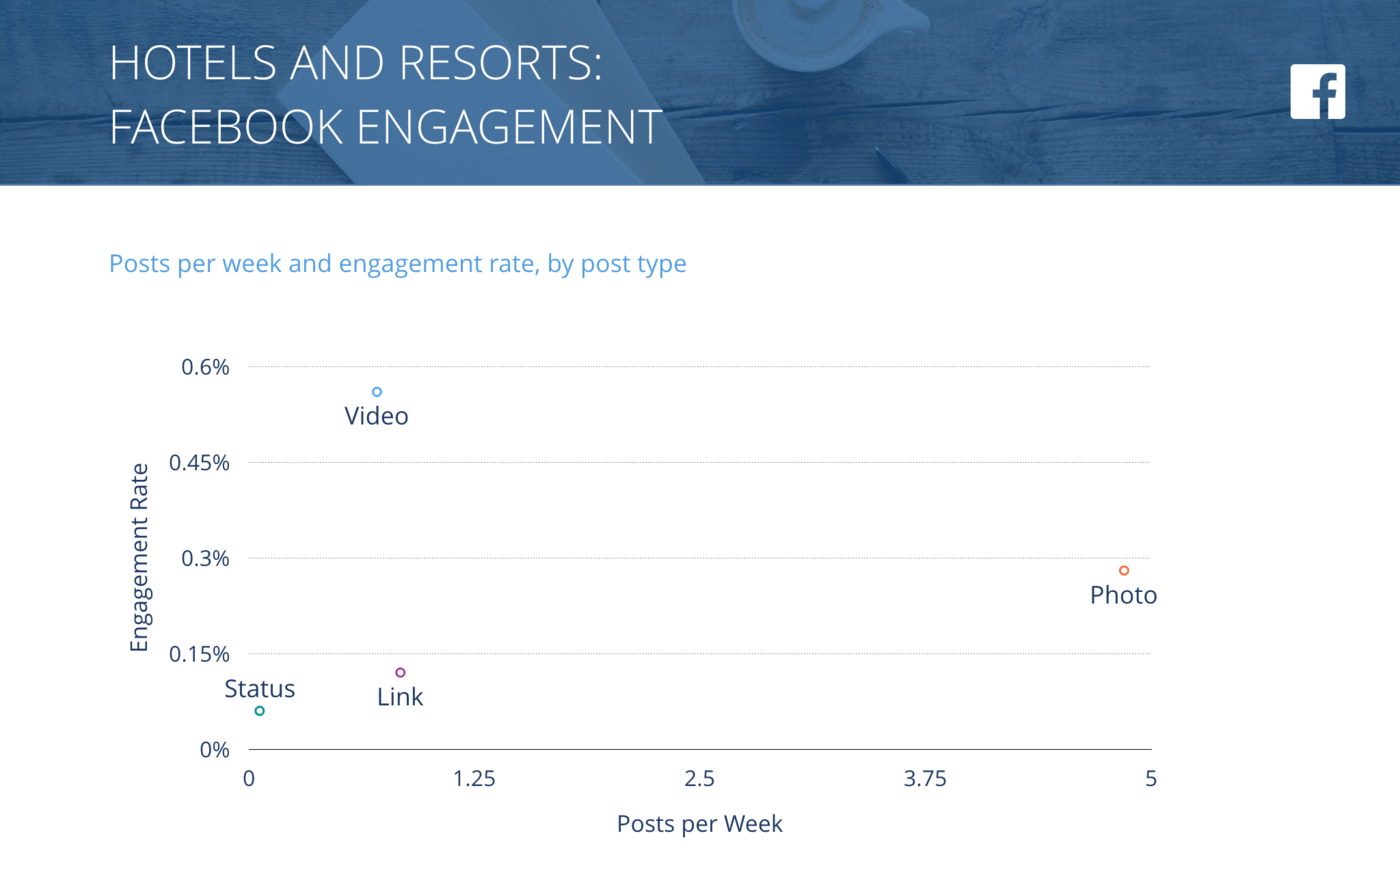 slide for Facebook Posts per Week vs. Engagement Rate per Post, Hotels & Resorts